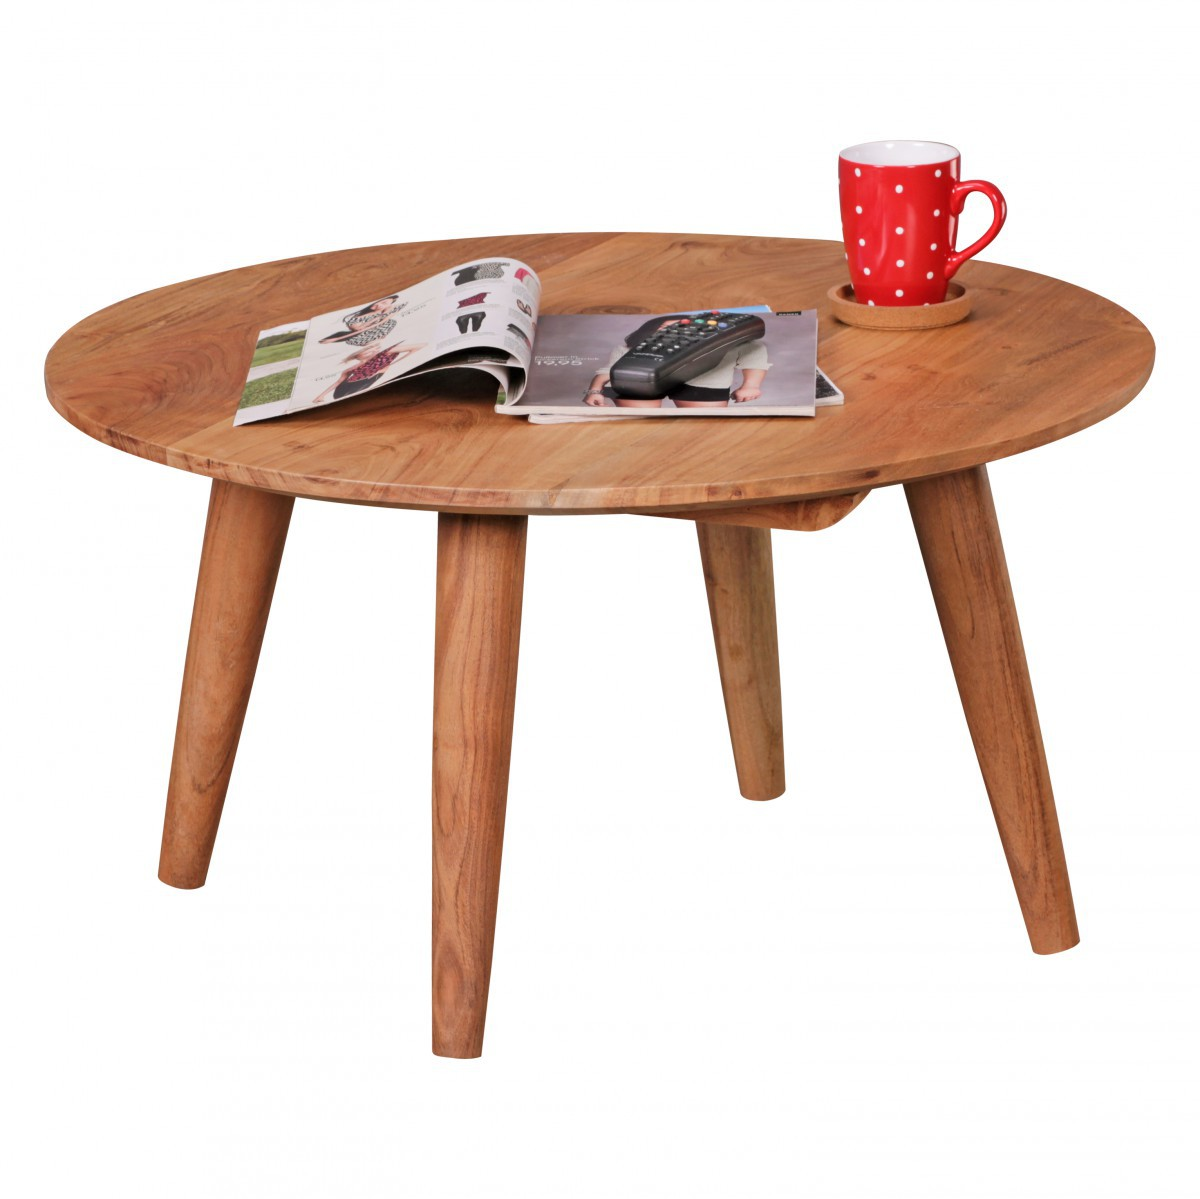 Finebuy table basse en bois massif acacia table basse ronde 75 x 40 cm ferme - Table ronde bois exotique ...